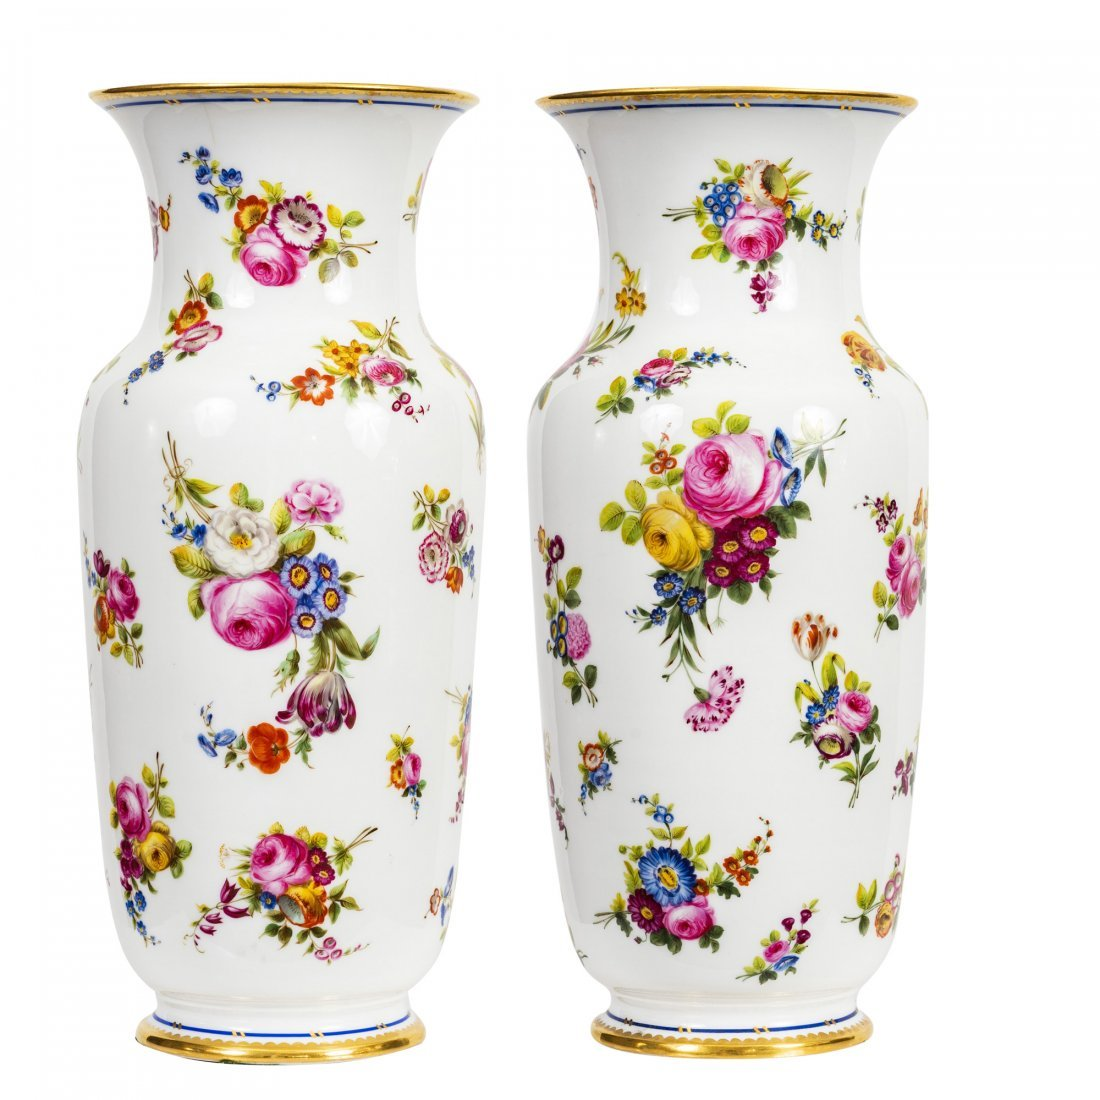 France, 19th Century Very Fine Paris Porcelain Vases